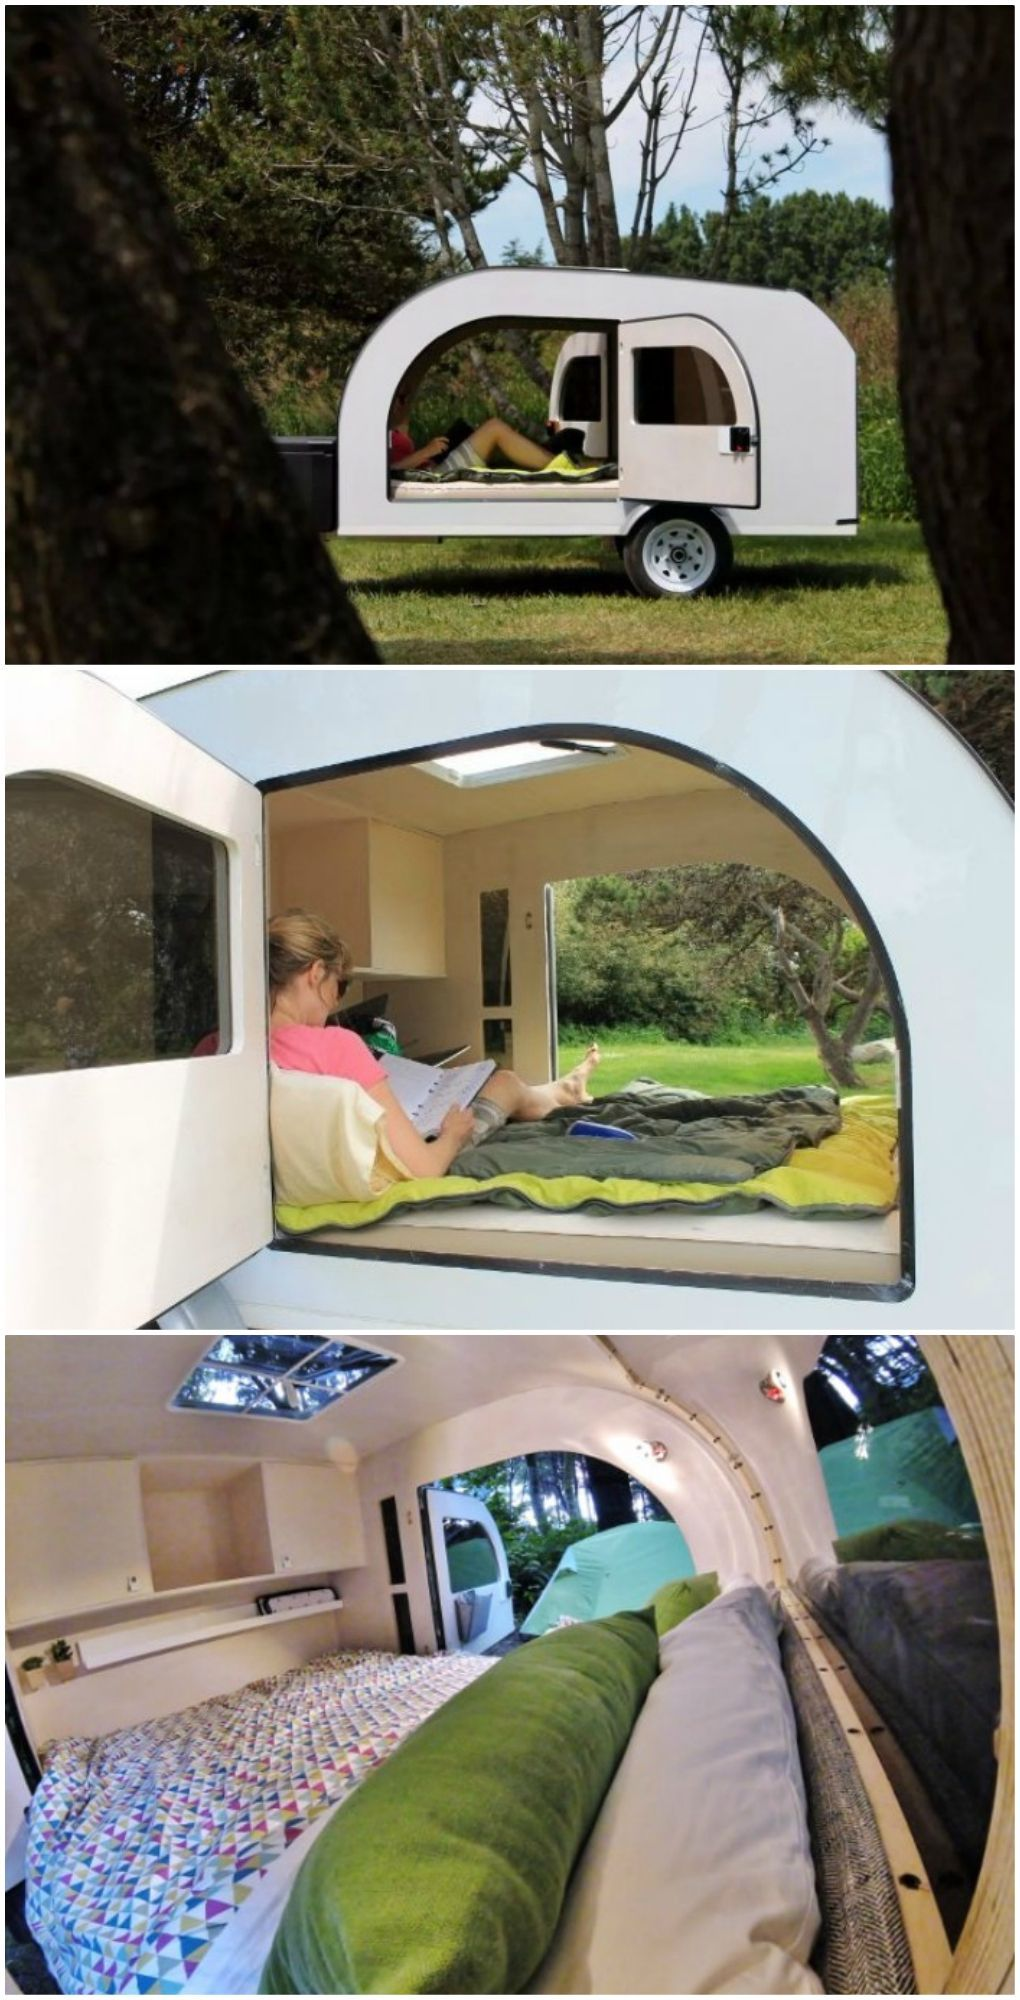 The teardrop trailer DROPLET brings the outdoors inside | Tear drop